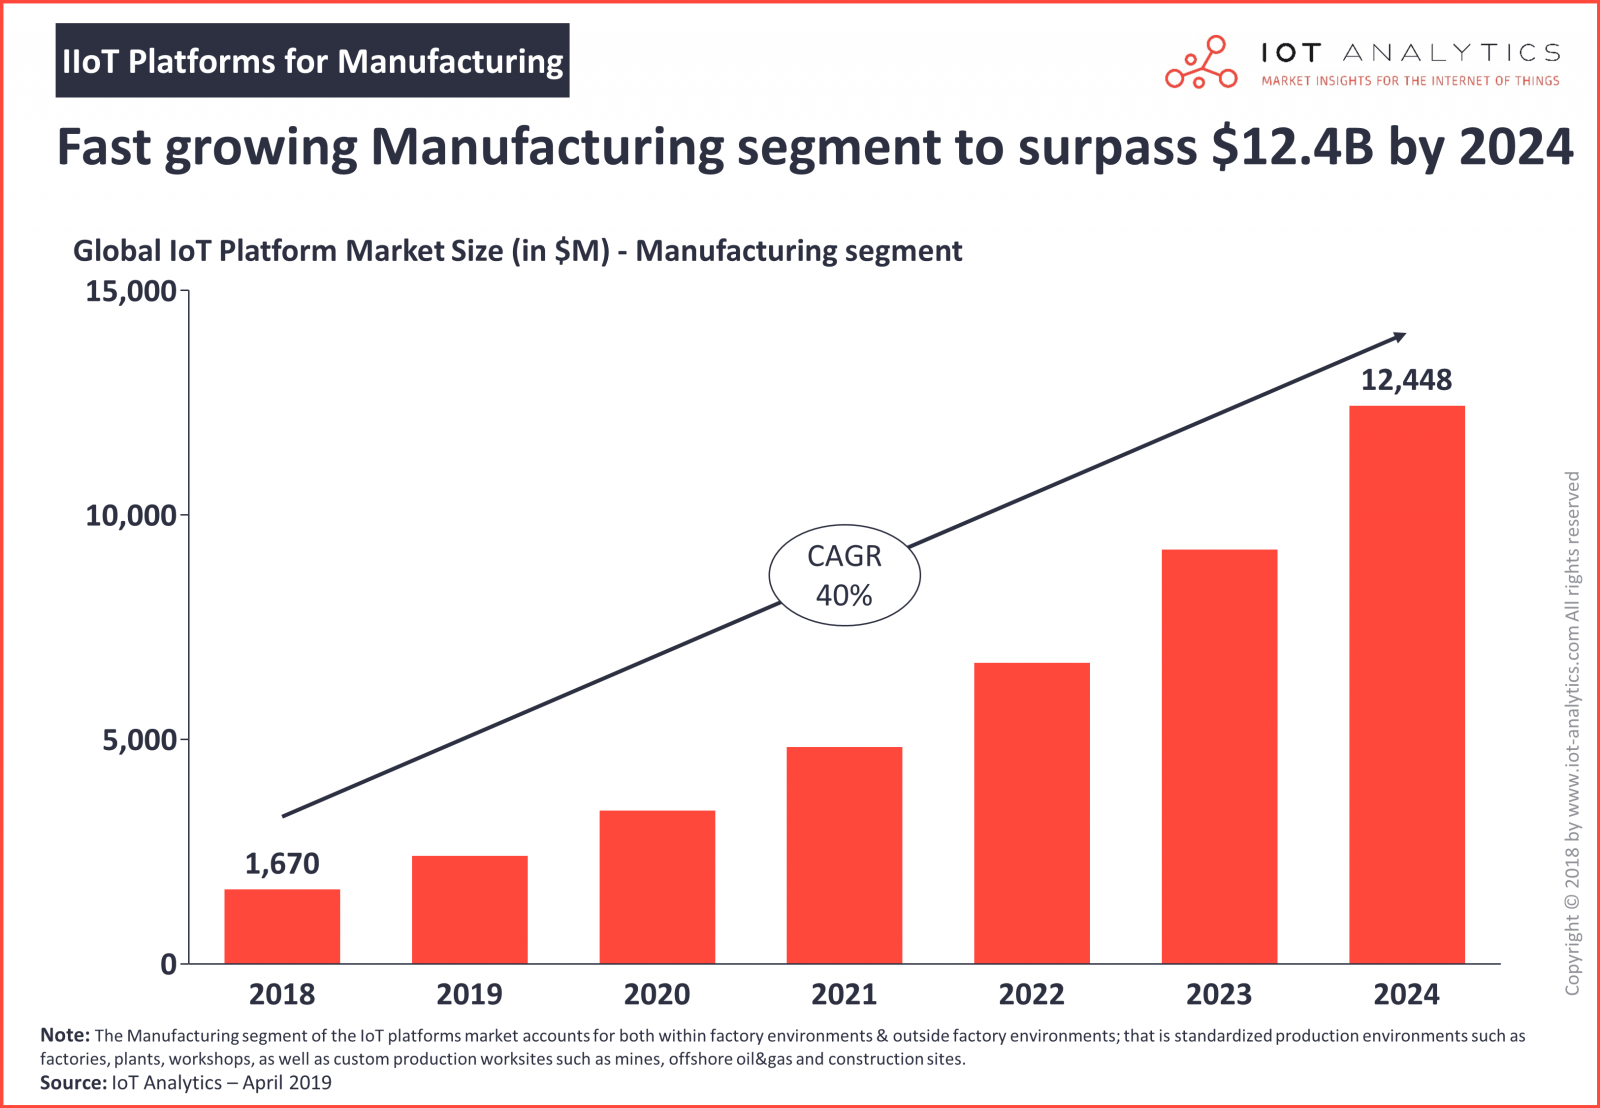 Fast Growing Manufacturing Segment - Details on Develirables - IIoT Platforms for Manufacturing 2019-2024 (IoT Analytics GmbH)